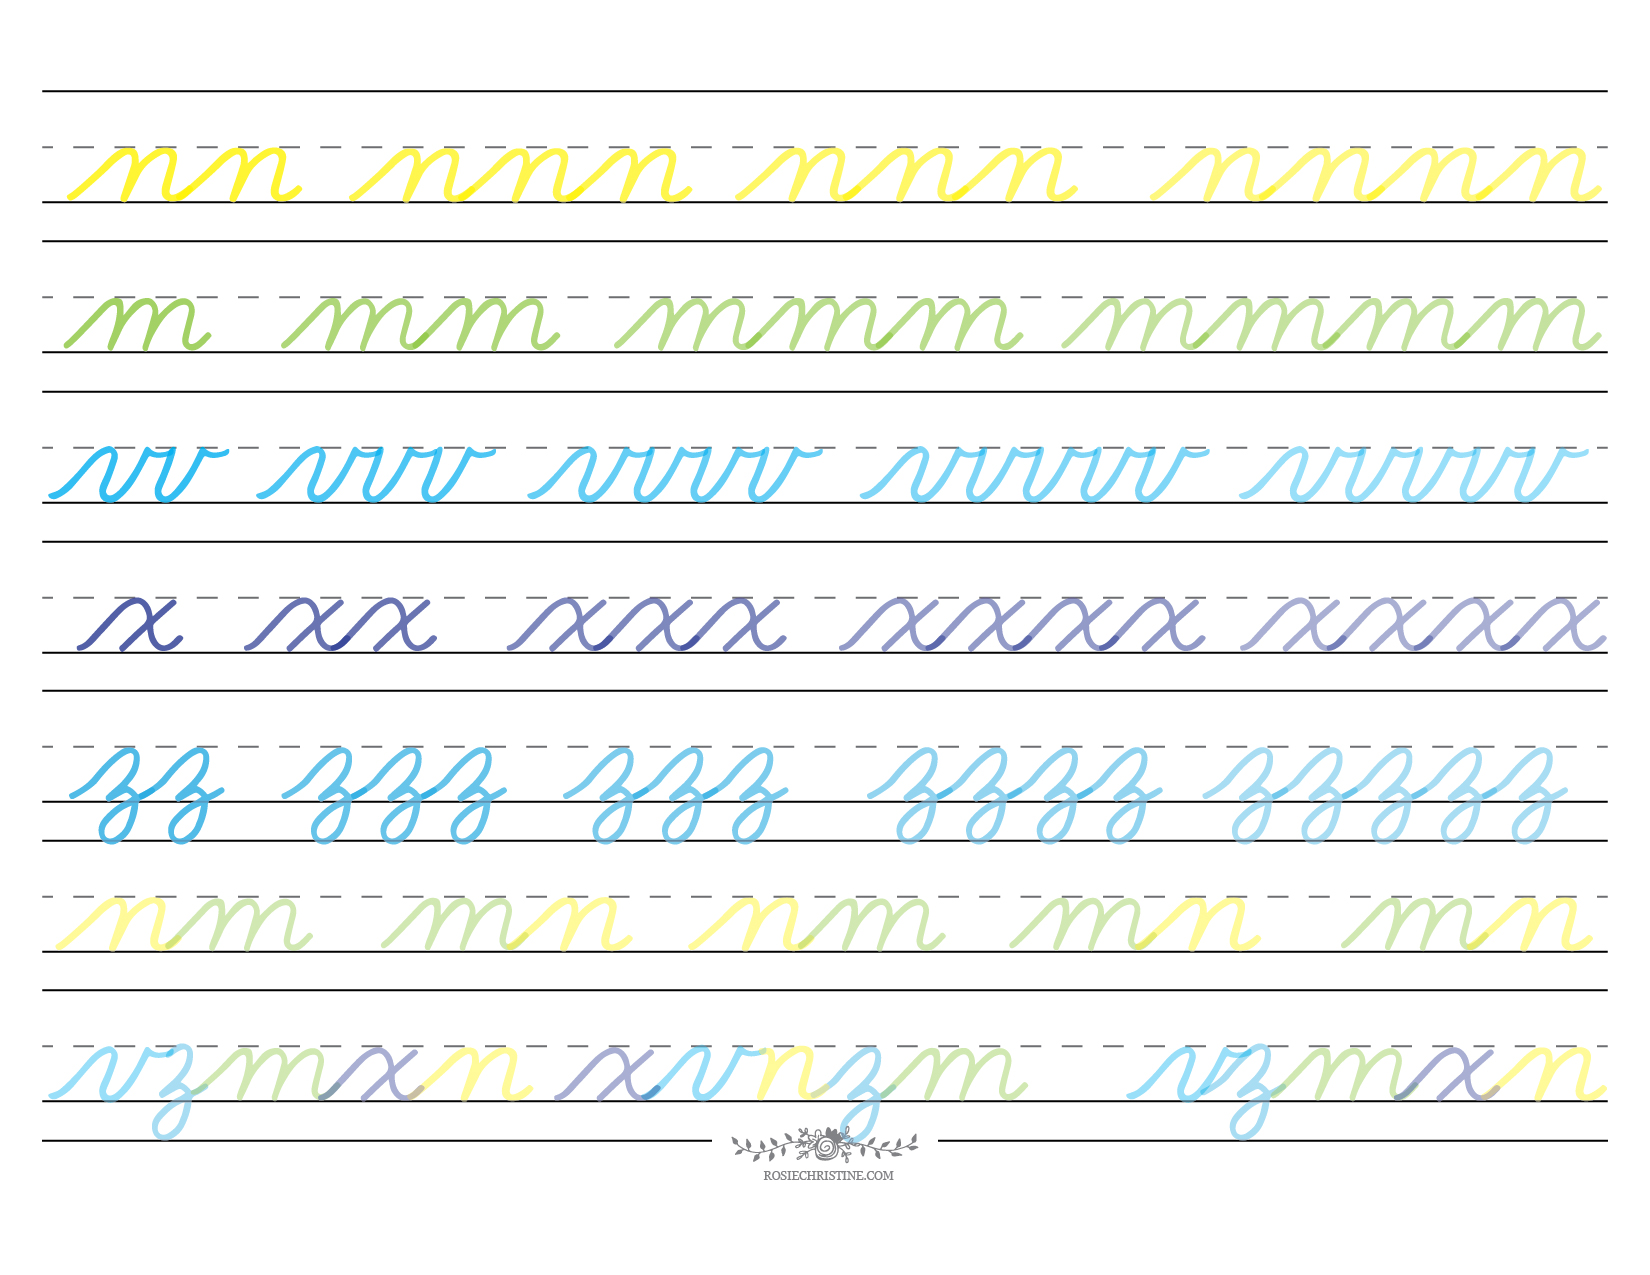 Cursive Lowercase Group 4 Worksheet 2 Rosie Christine